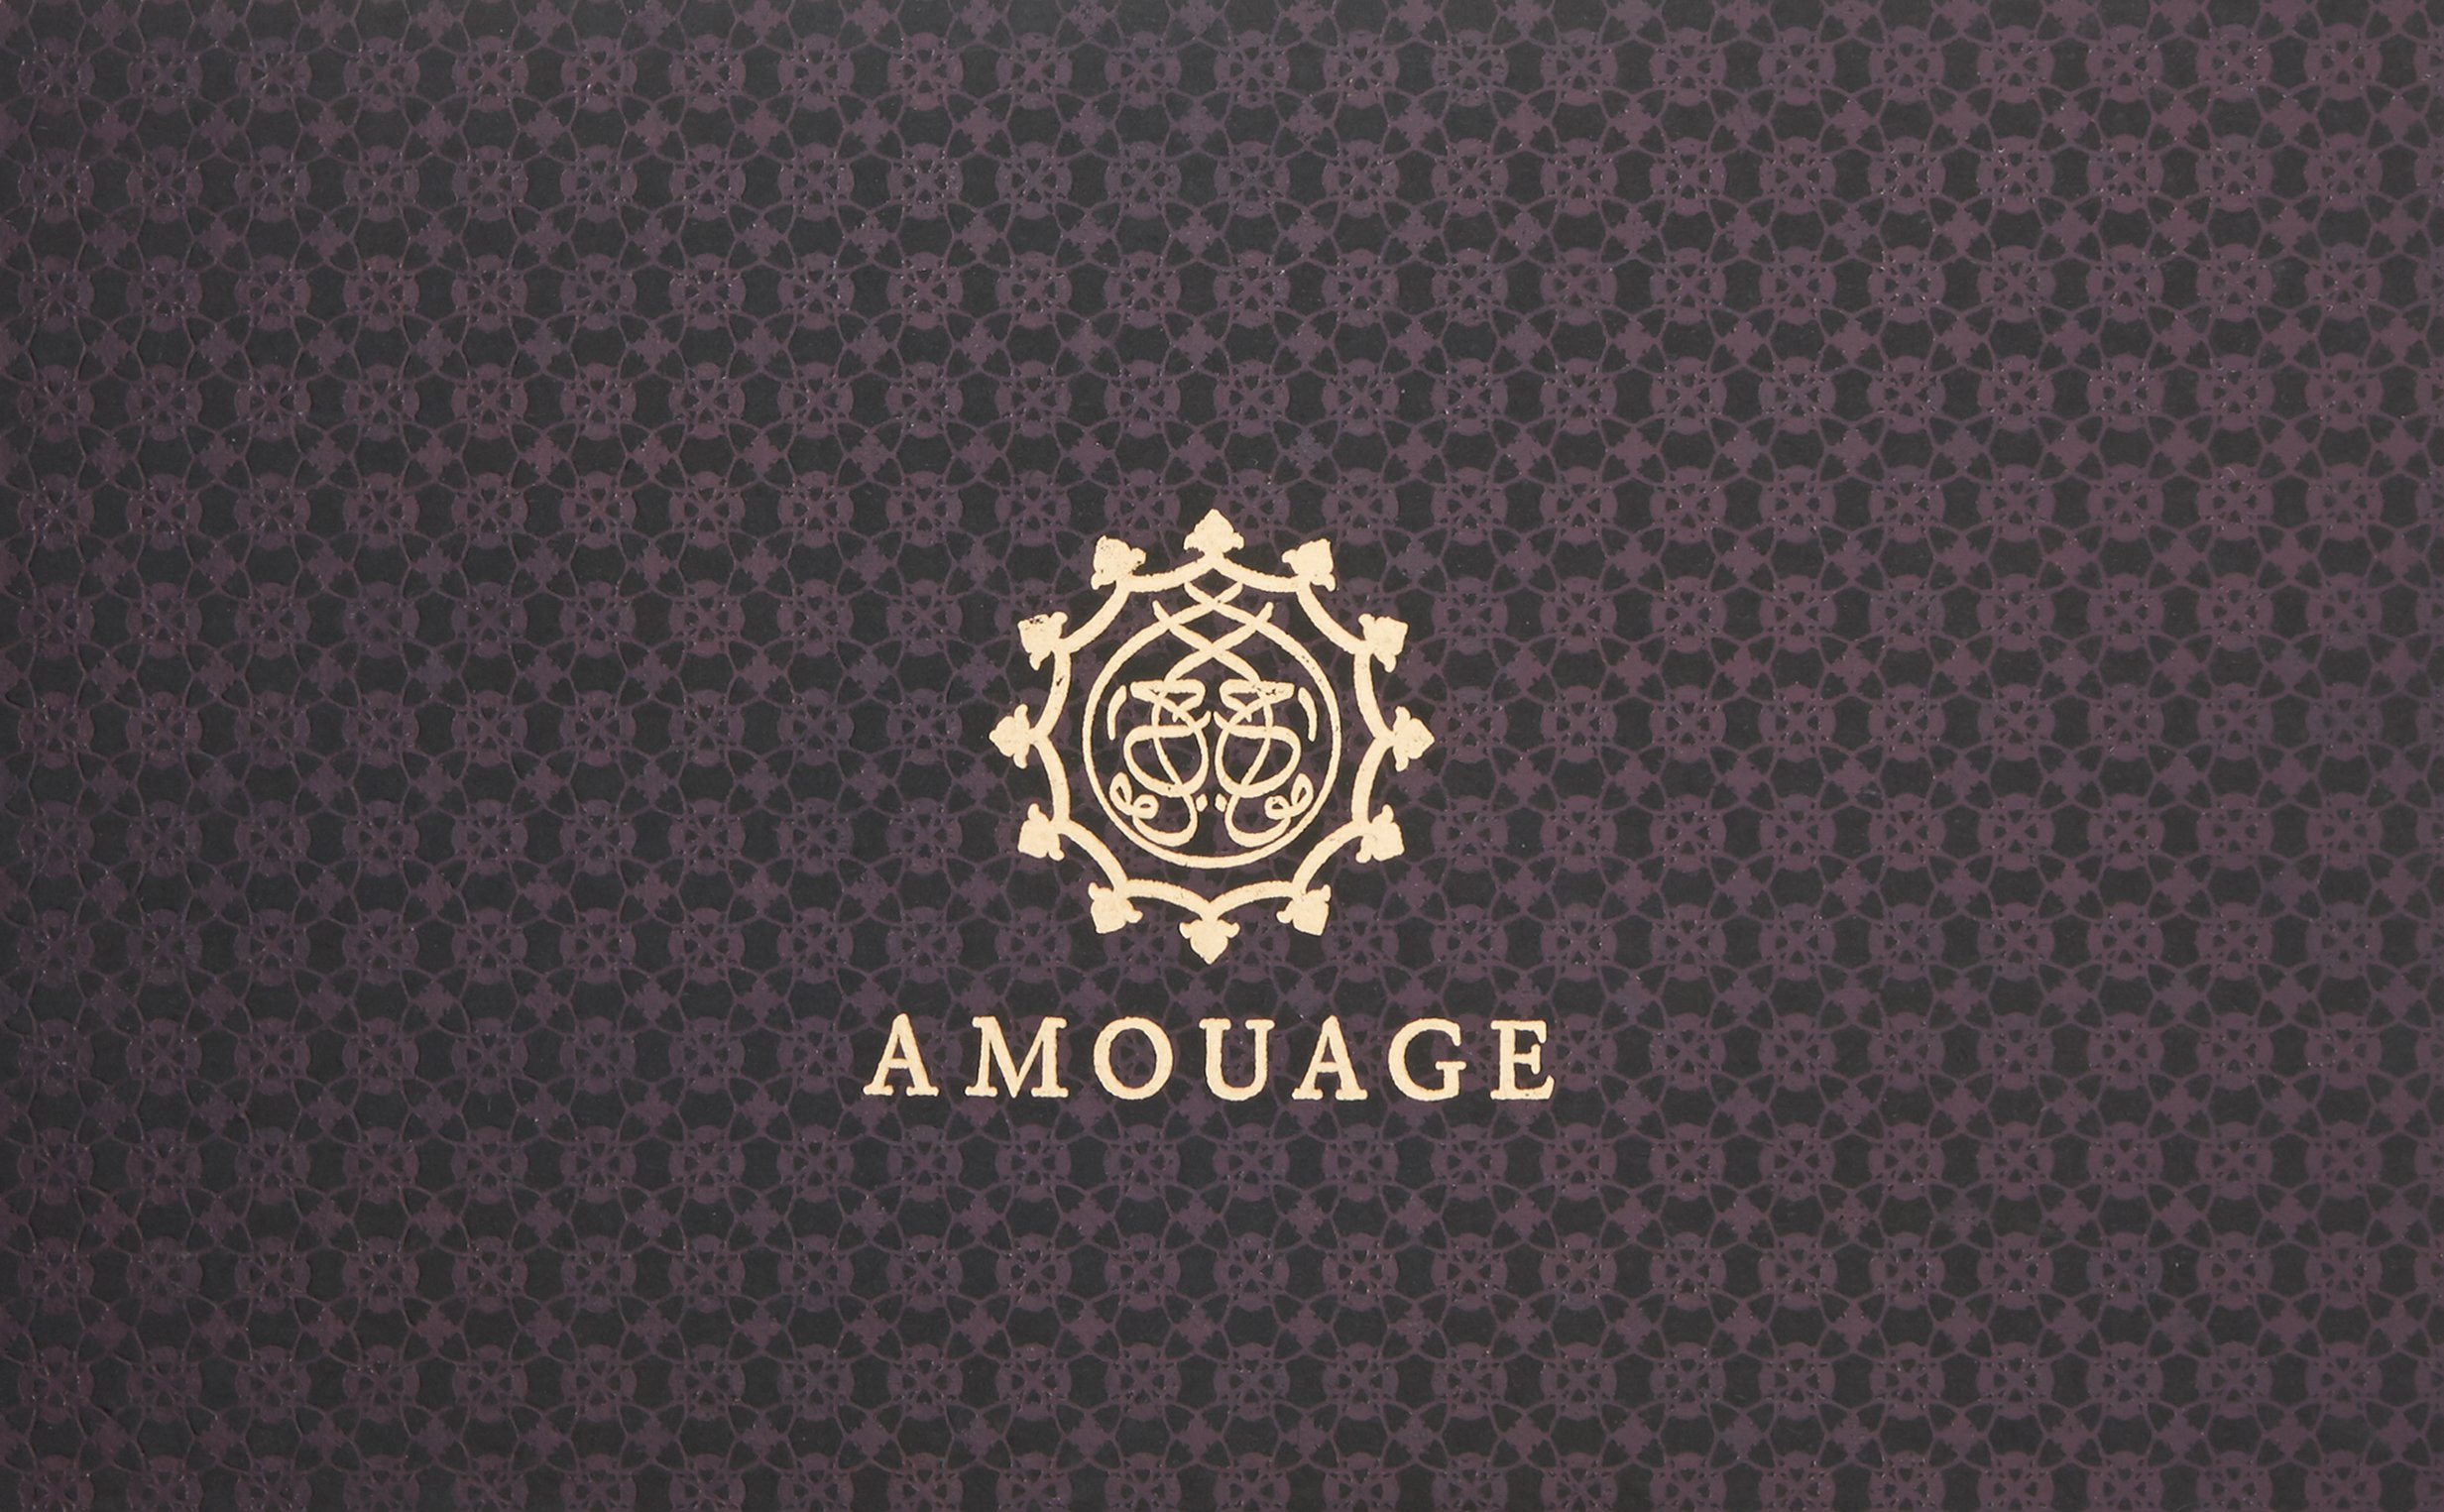 AMOUAGE Sampler Box Men's Fragrance Set by AMOUAGE (Image #2)